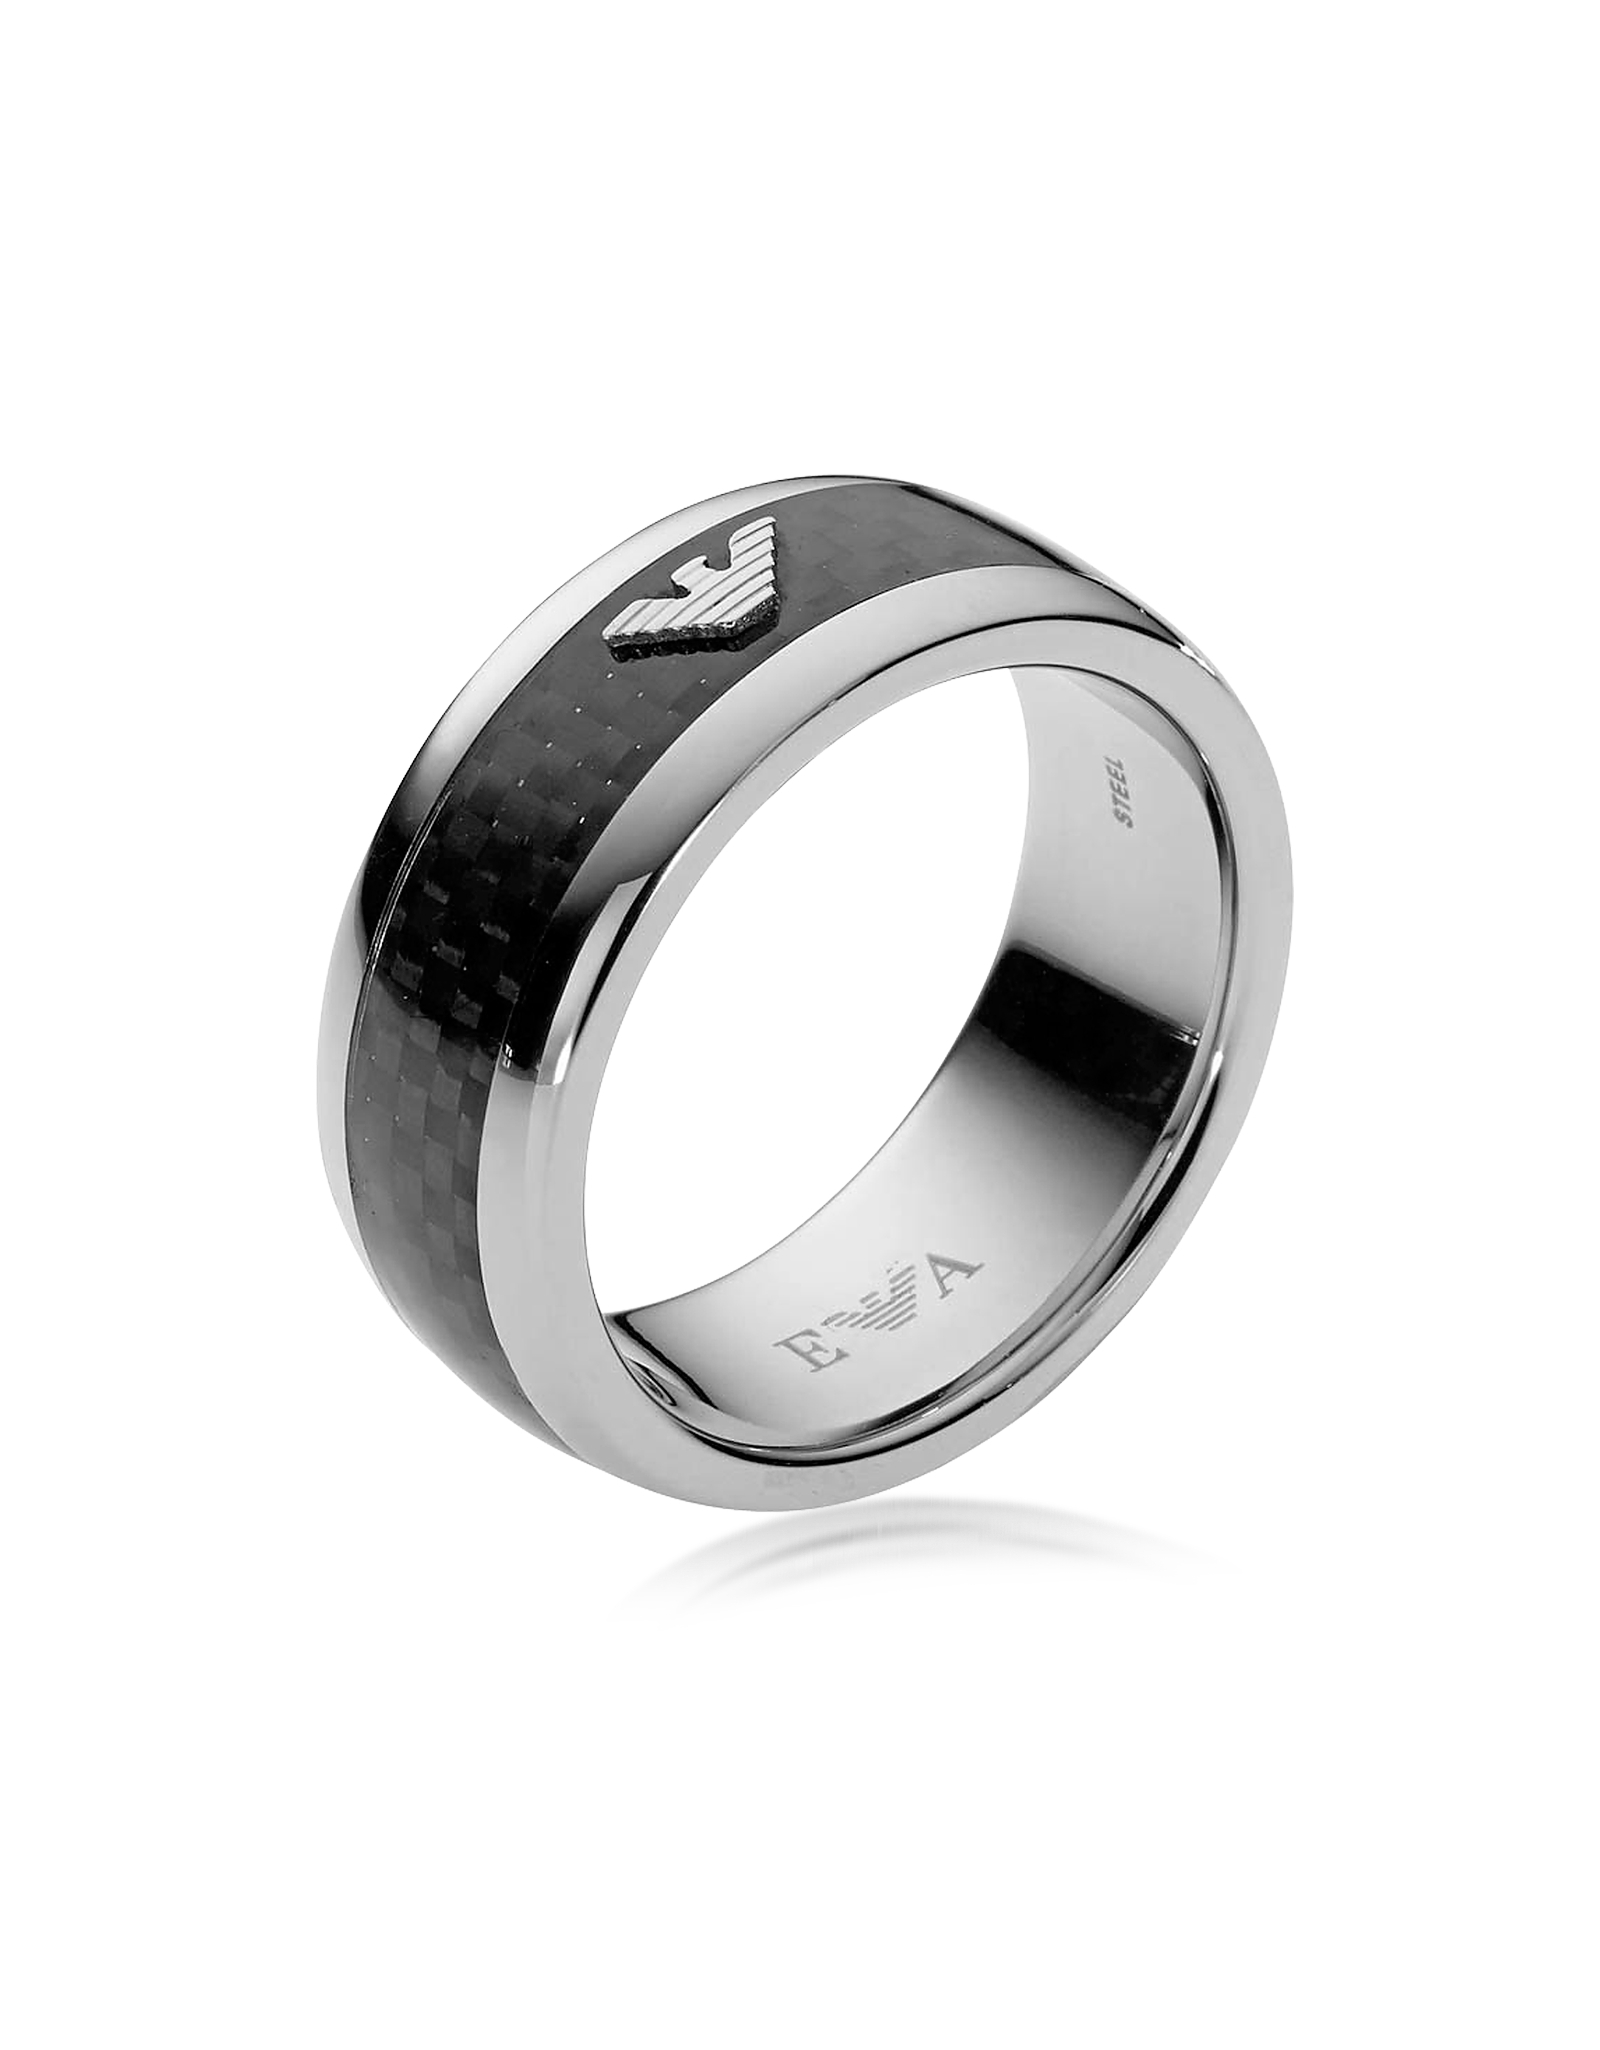 mens black rings friendly pin titanium carbon wedding ring eco fiber unique womens hearts